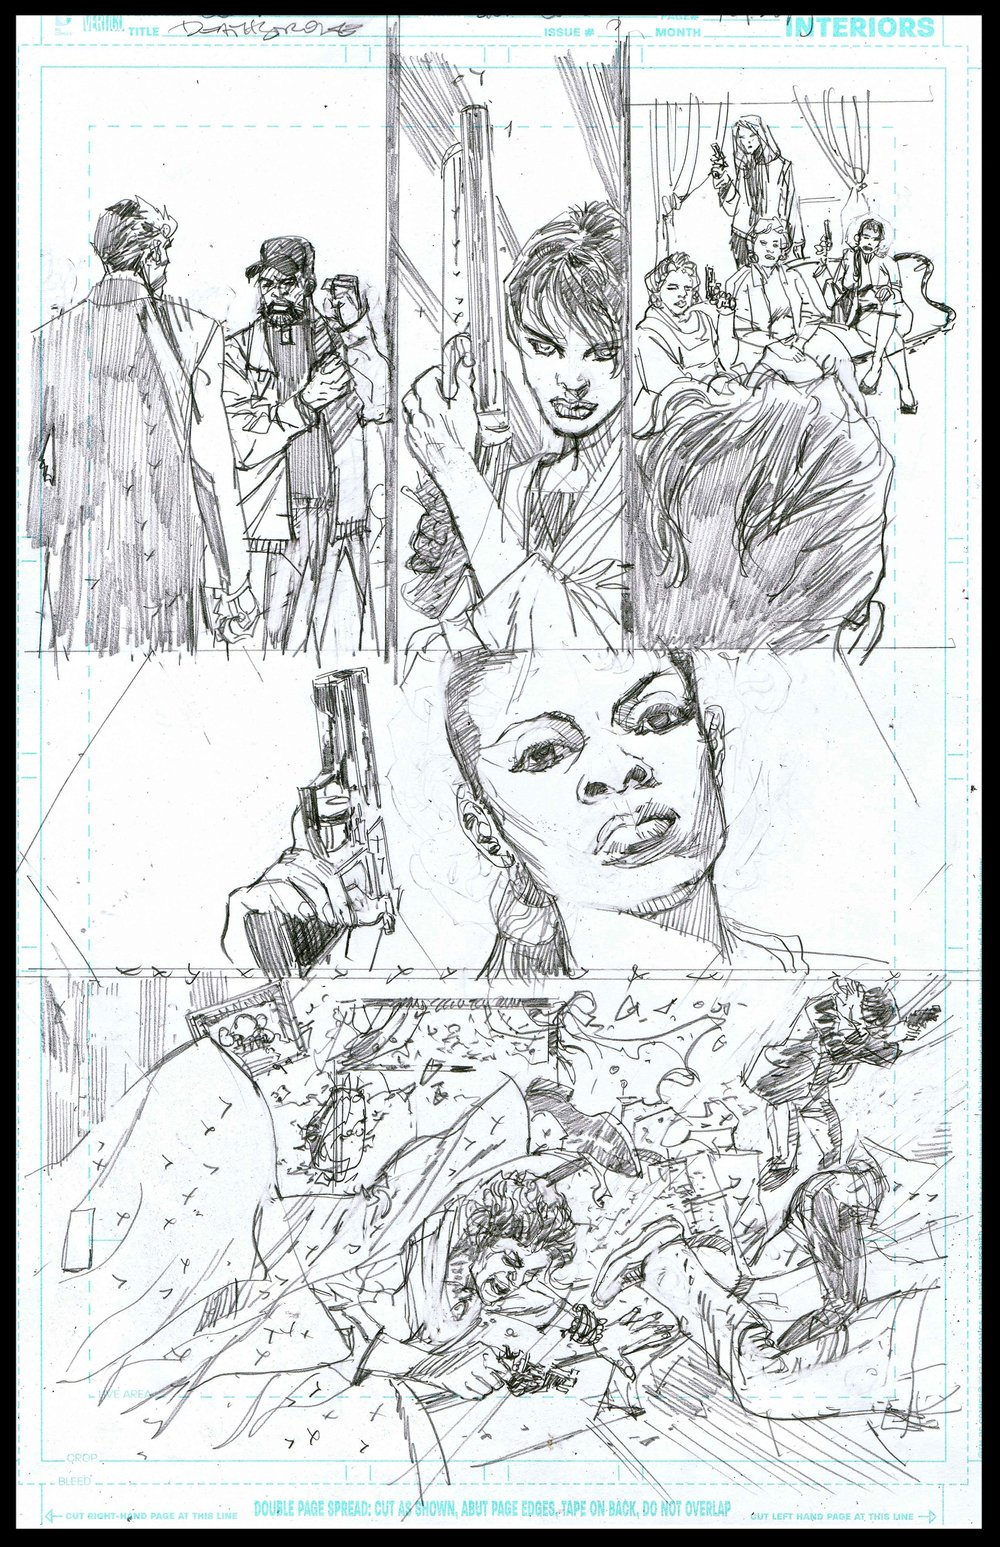 Deathstroke #11 - Page 9 - Pencils